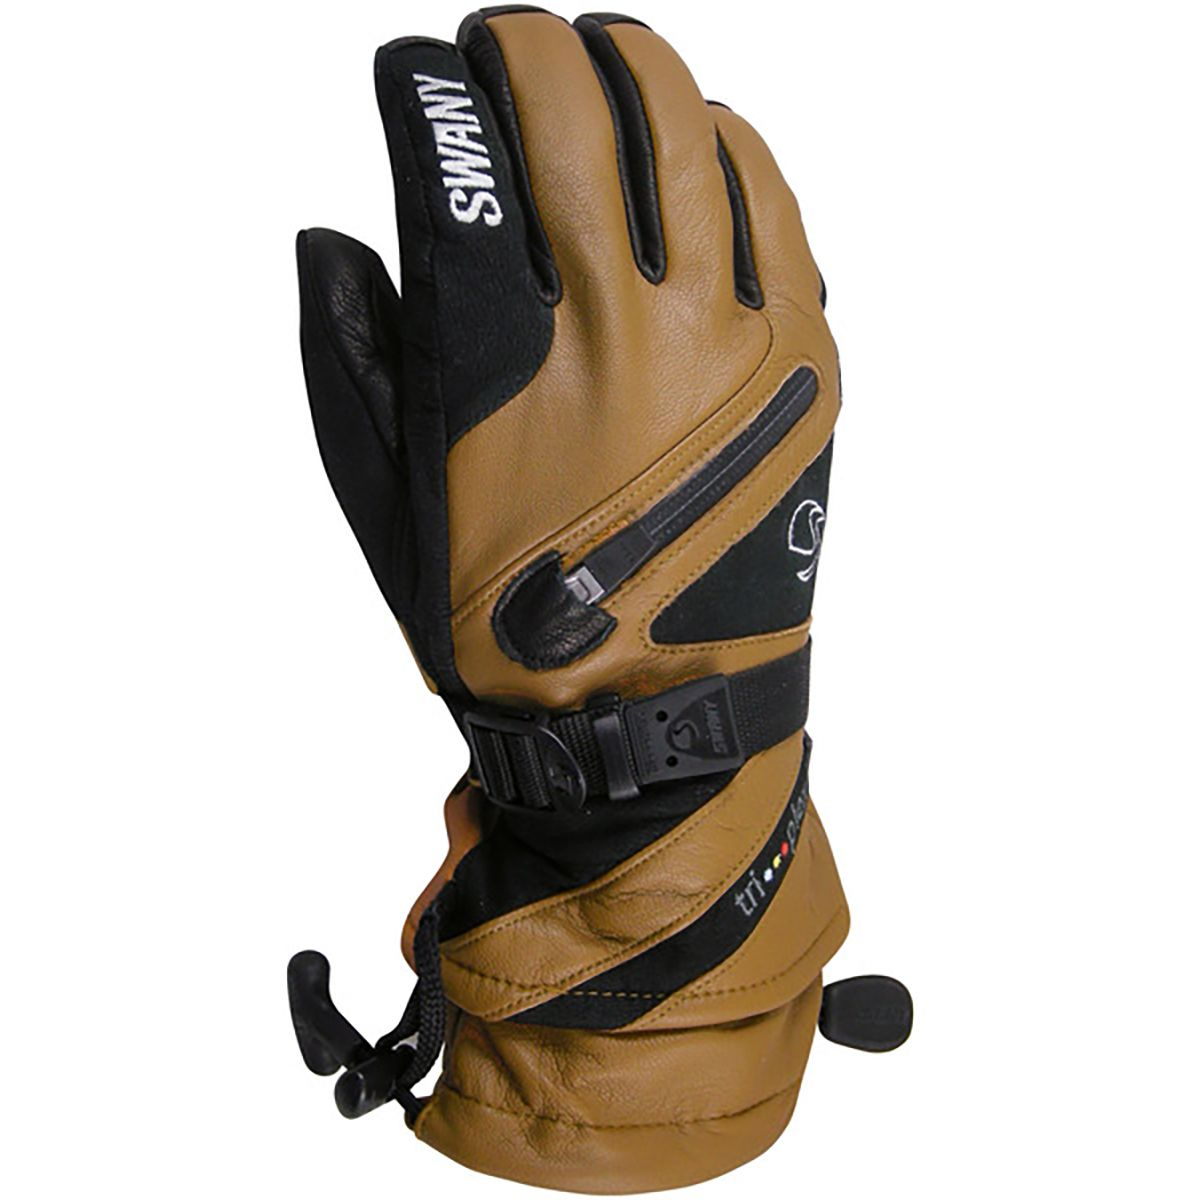 photo: Swany X-Cell II Glove